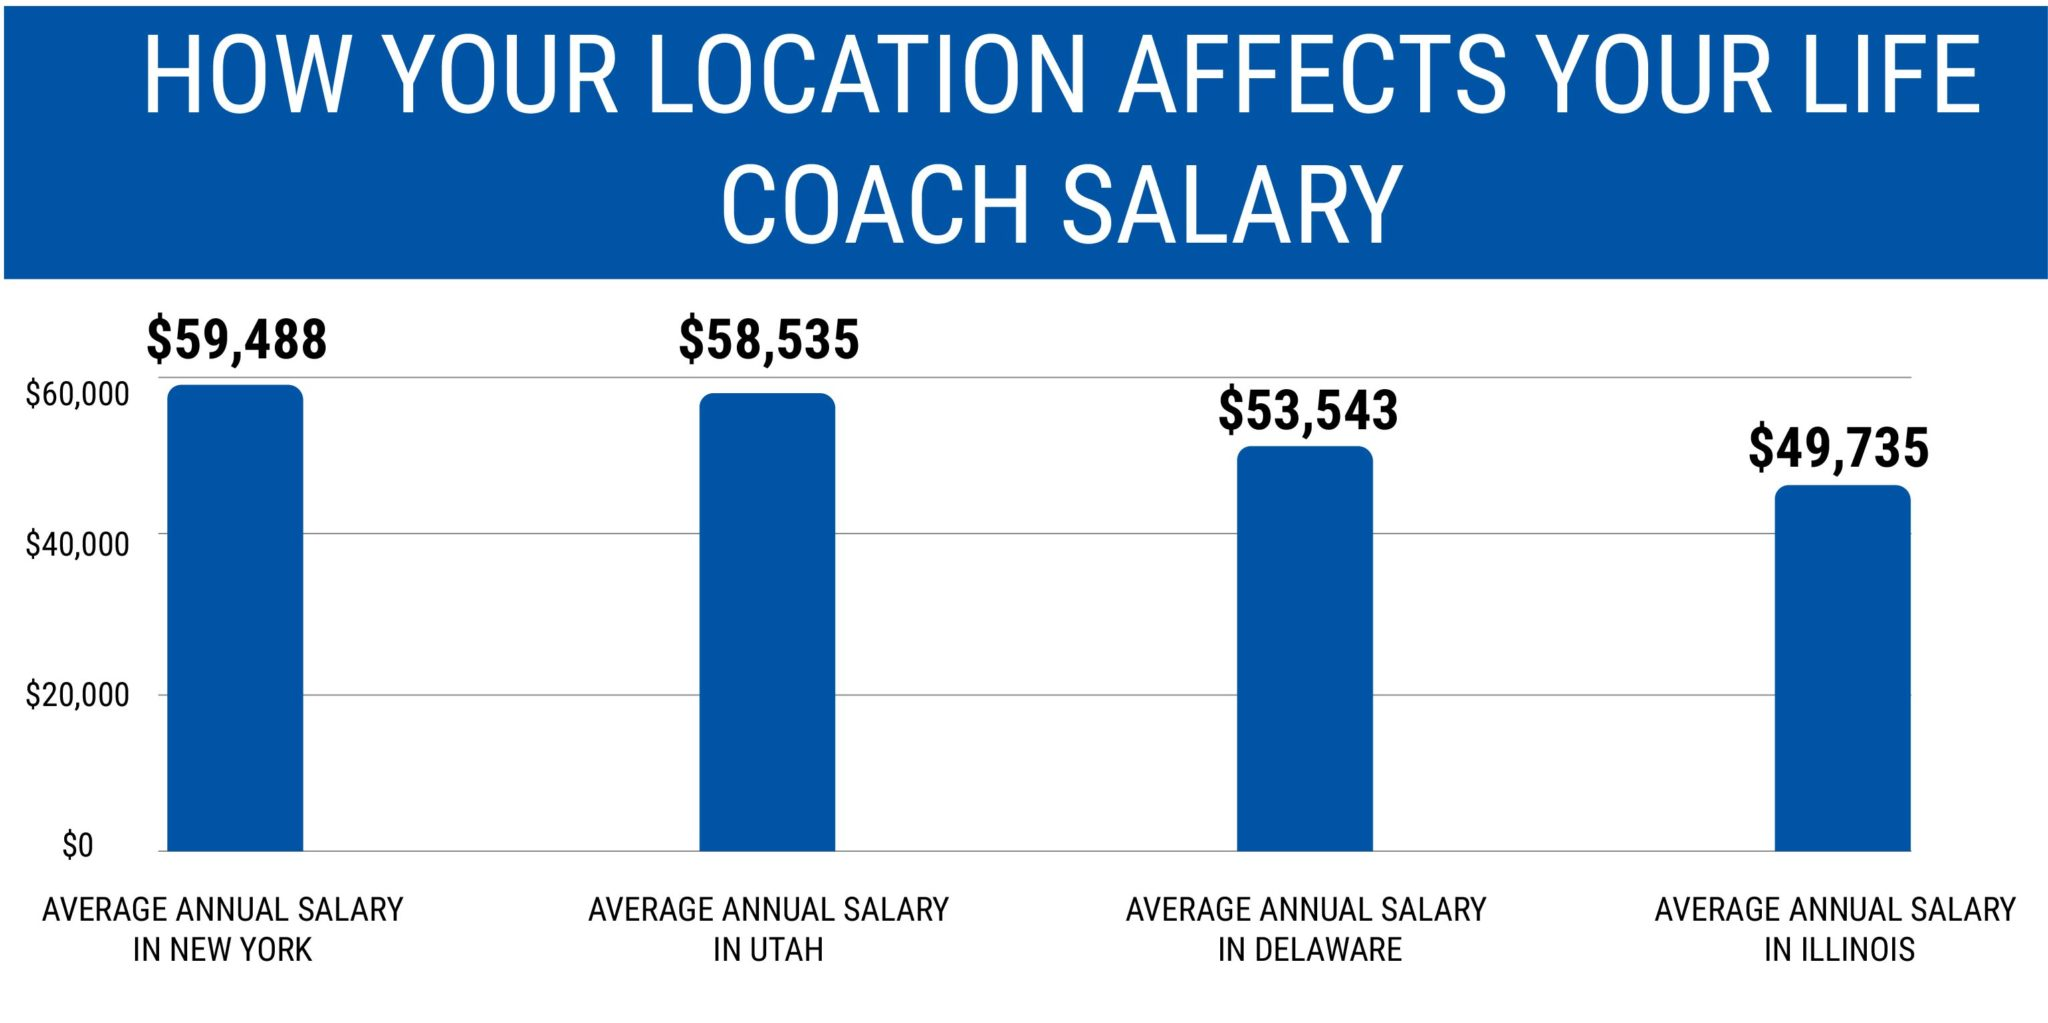 HOW YOUR LOCATION AFFECTS YOUR LIFE COACH SALARY